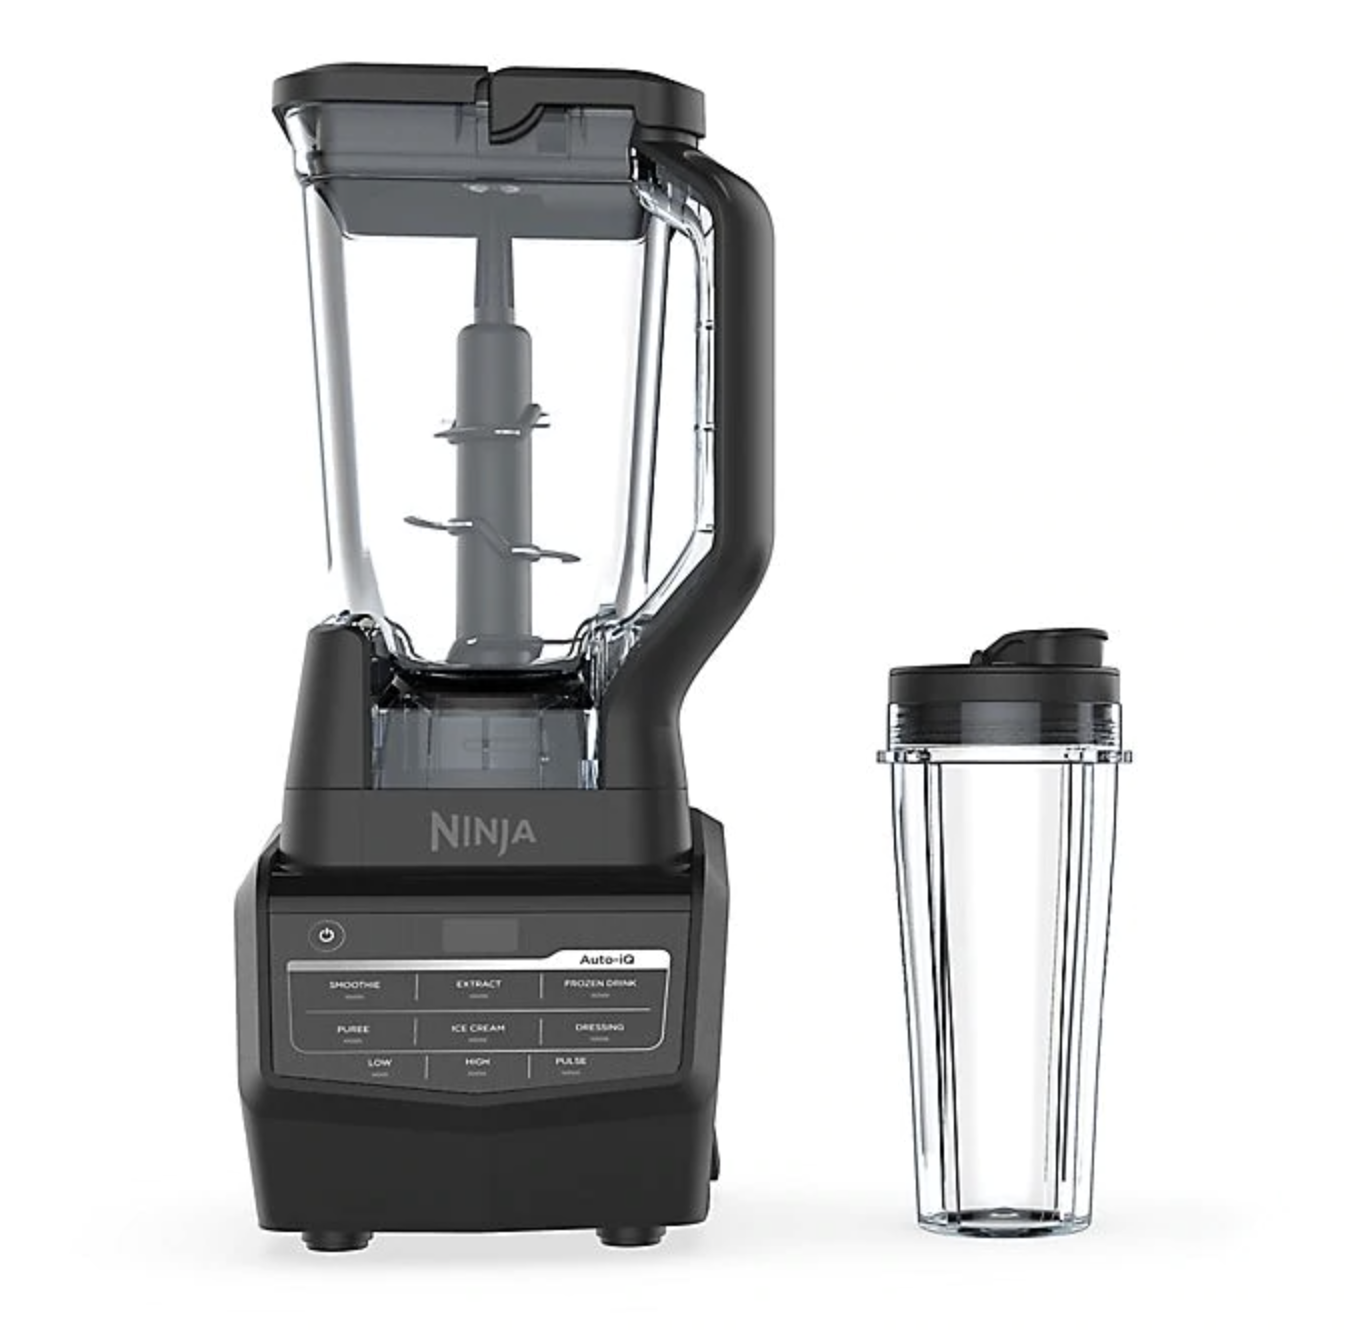 Large Ninja blender with travel cup and lid